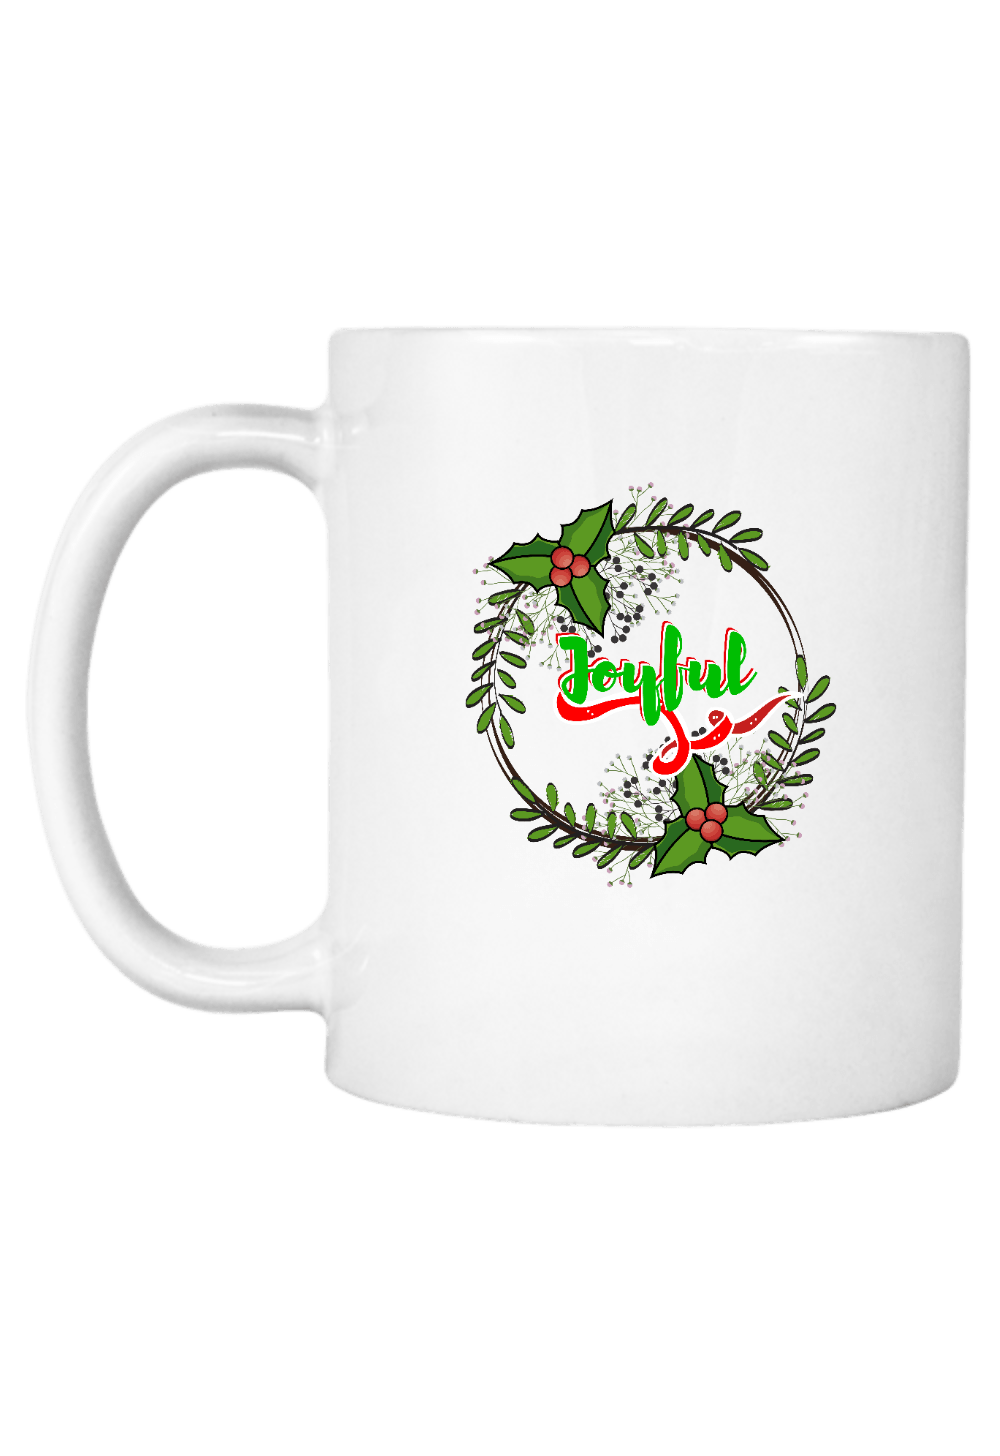 Joyful Christmas Coffee Mug